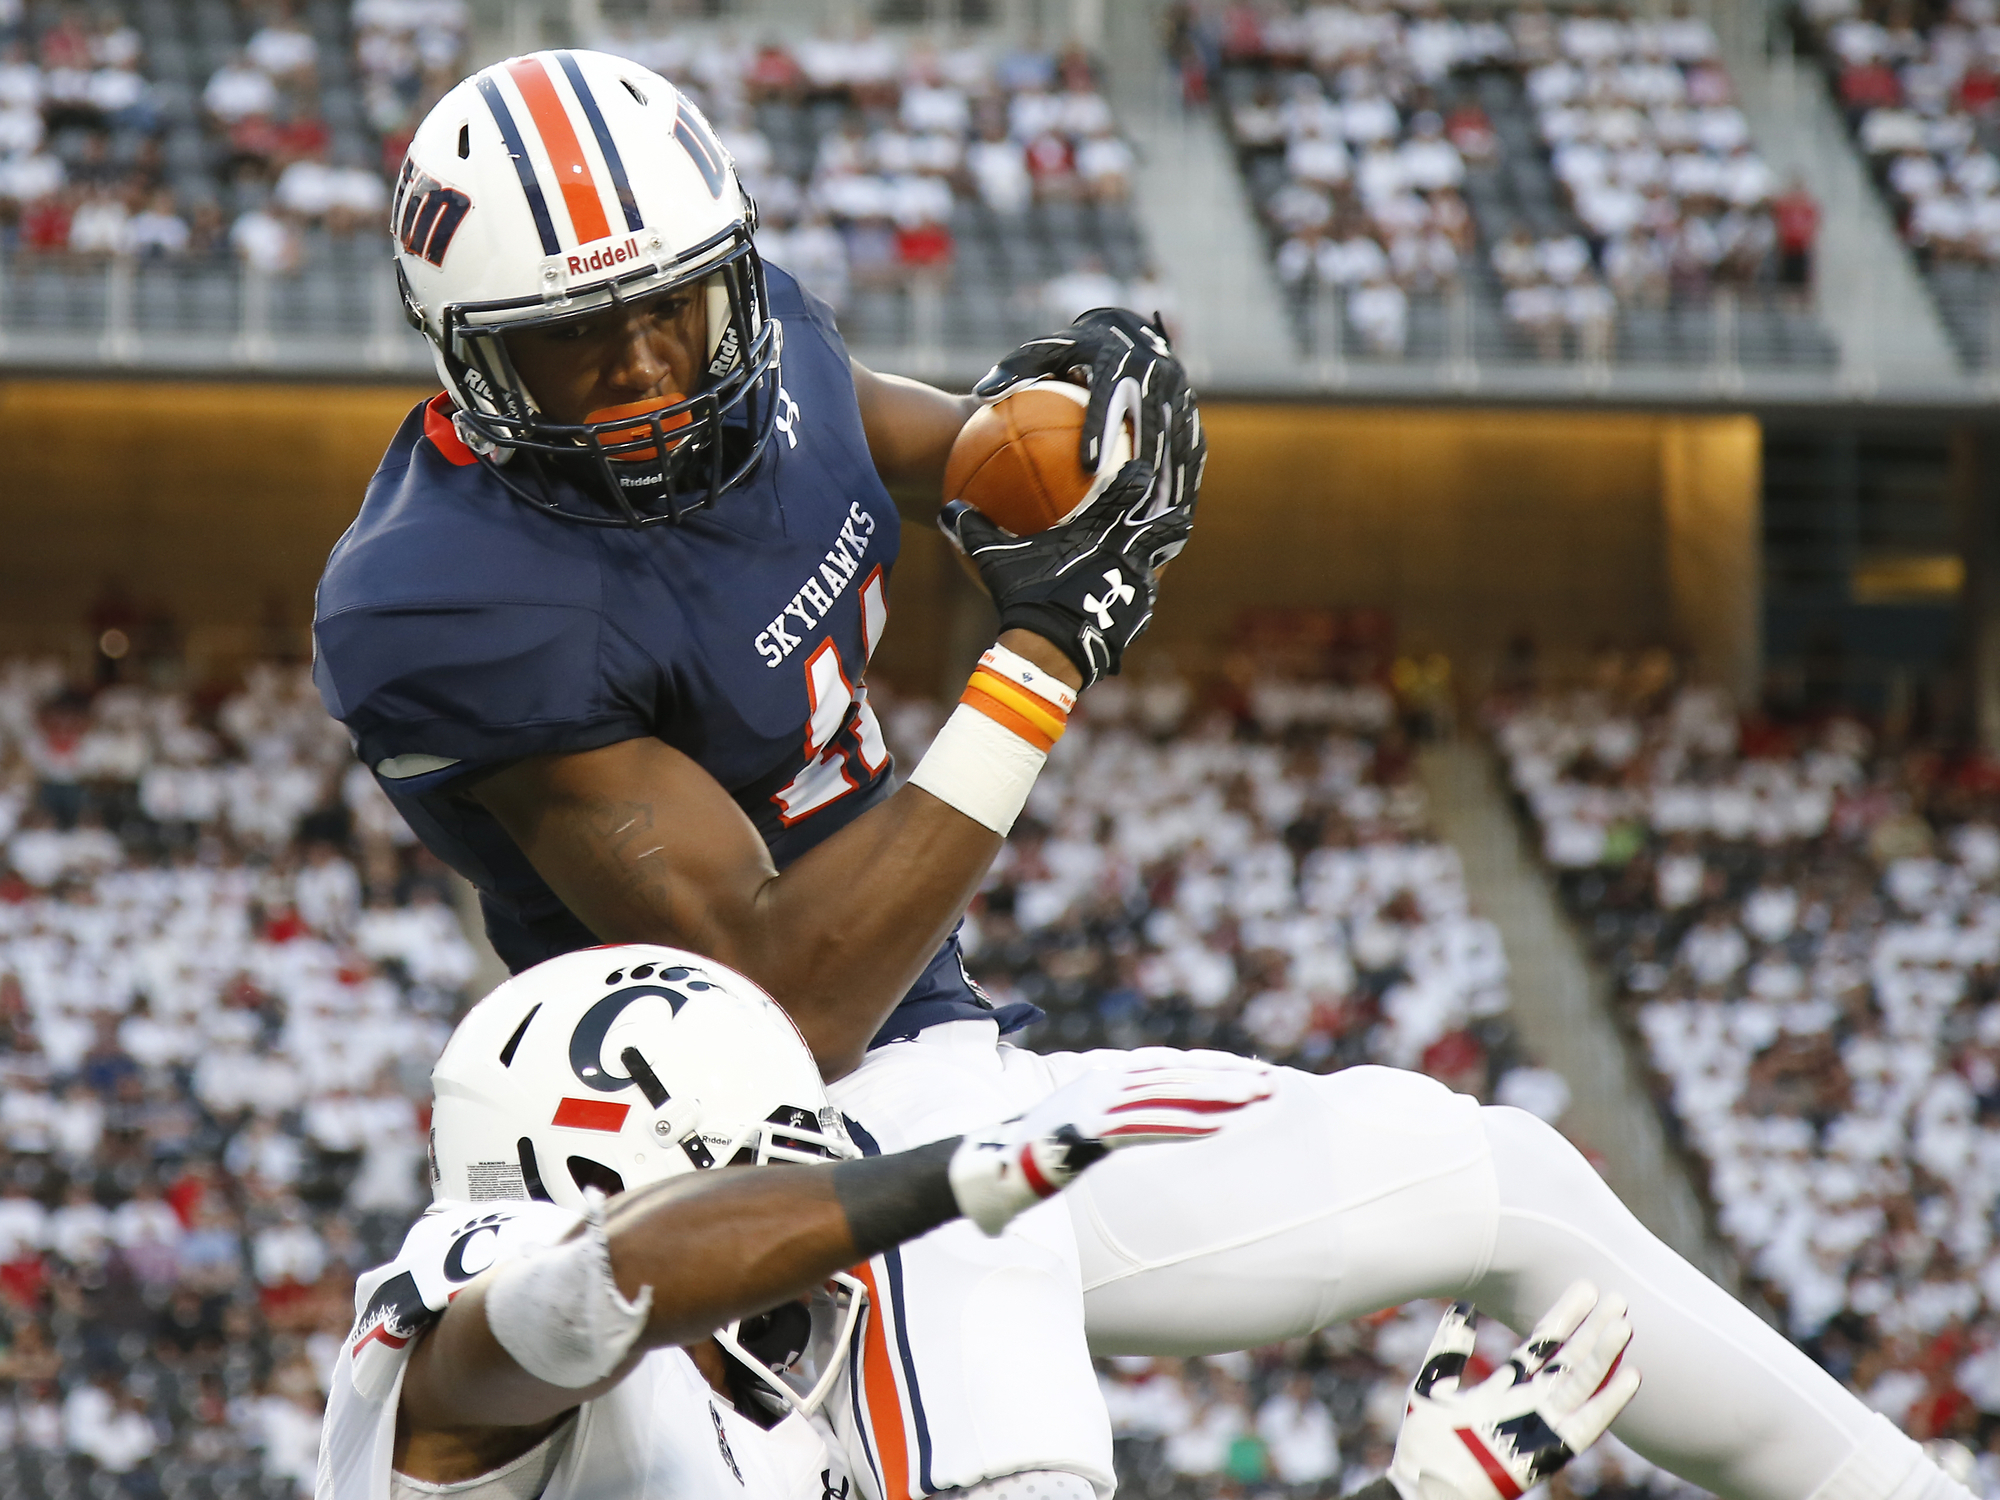 Tennessee-Martin wide receiver Kyle Kerrick (17) leaps to make a catch along the sideline  during the first half of an NCAA college football game against Cincinnati, Thursday, Sept. 1, 2016, at Nippert Stadium in Cincinnati. (Kareem Elgazzar/The Cincinnat